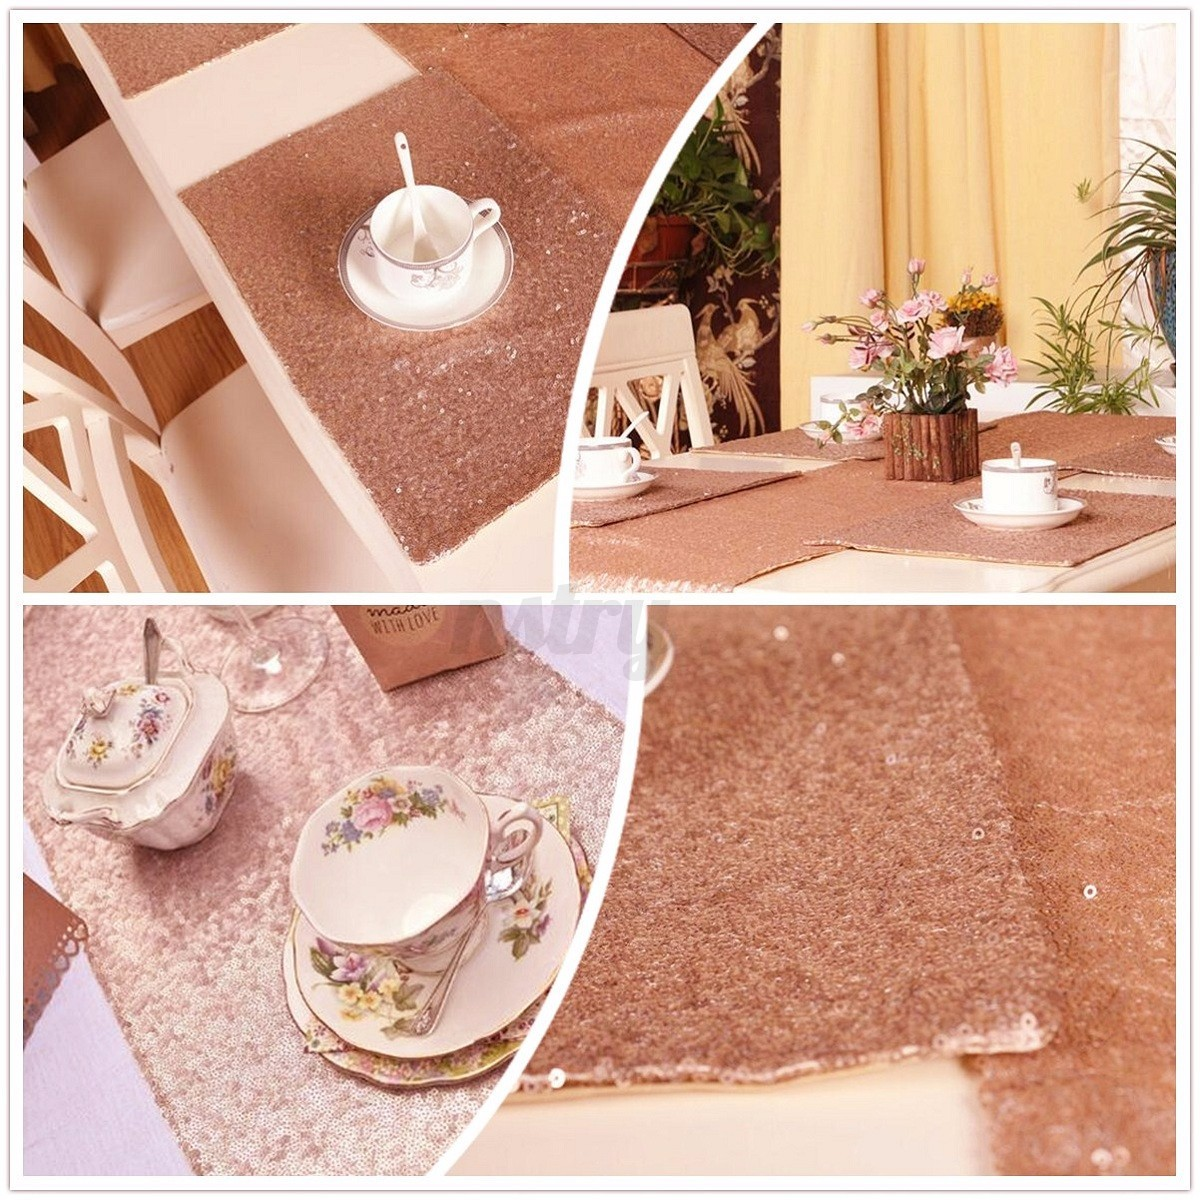 au 48 39 39 x72 39 39 sparkly sequin table fabric rose gold cloth wedding party backdrop ebay. Black Bedroom Furniture Sets. Home Design Ideas